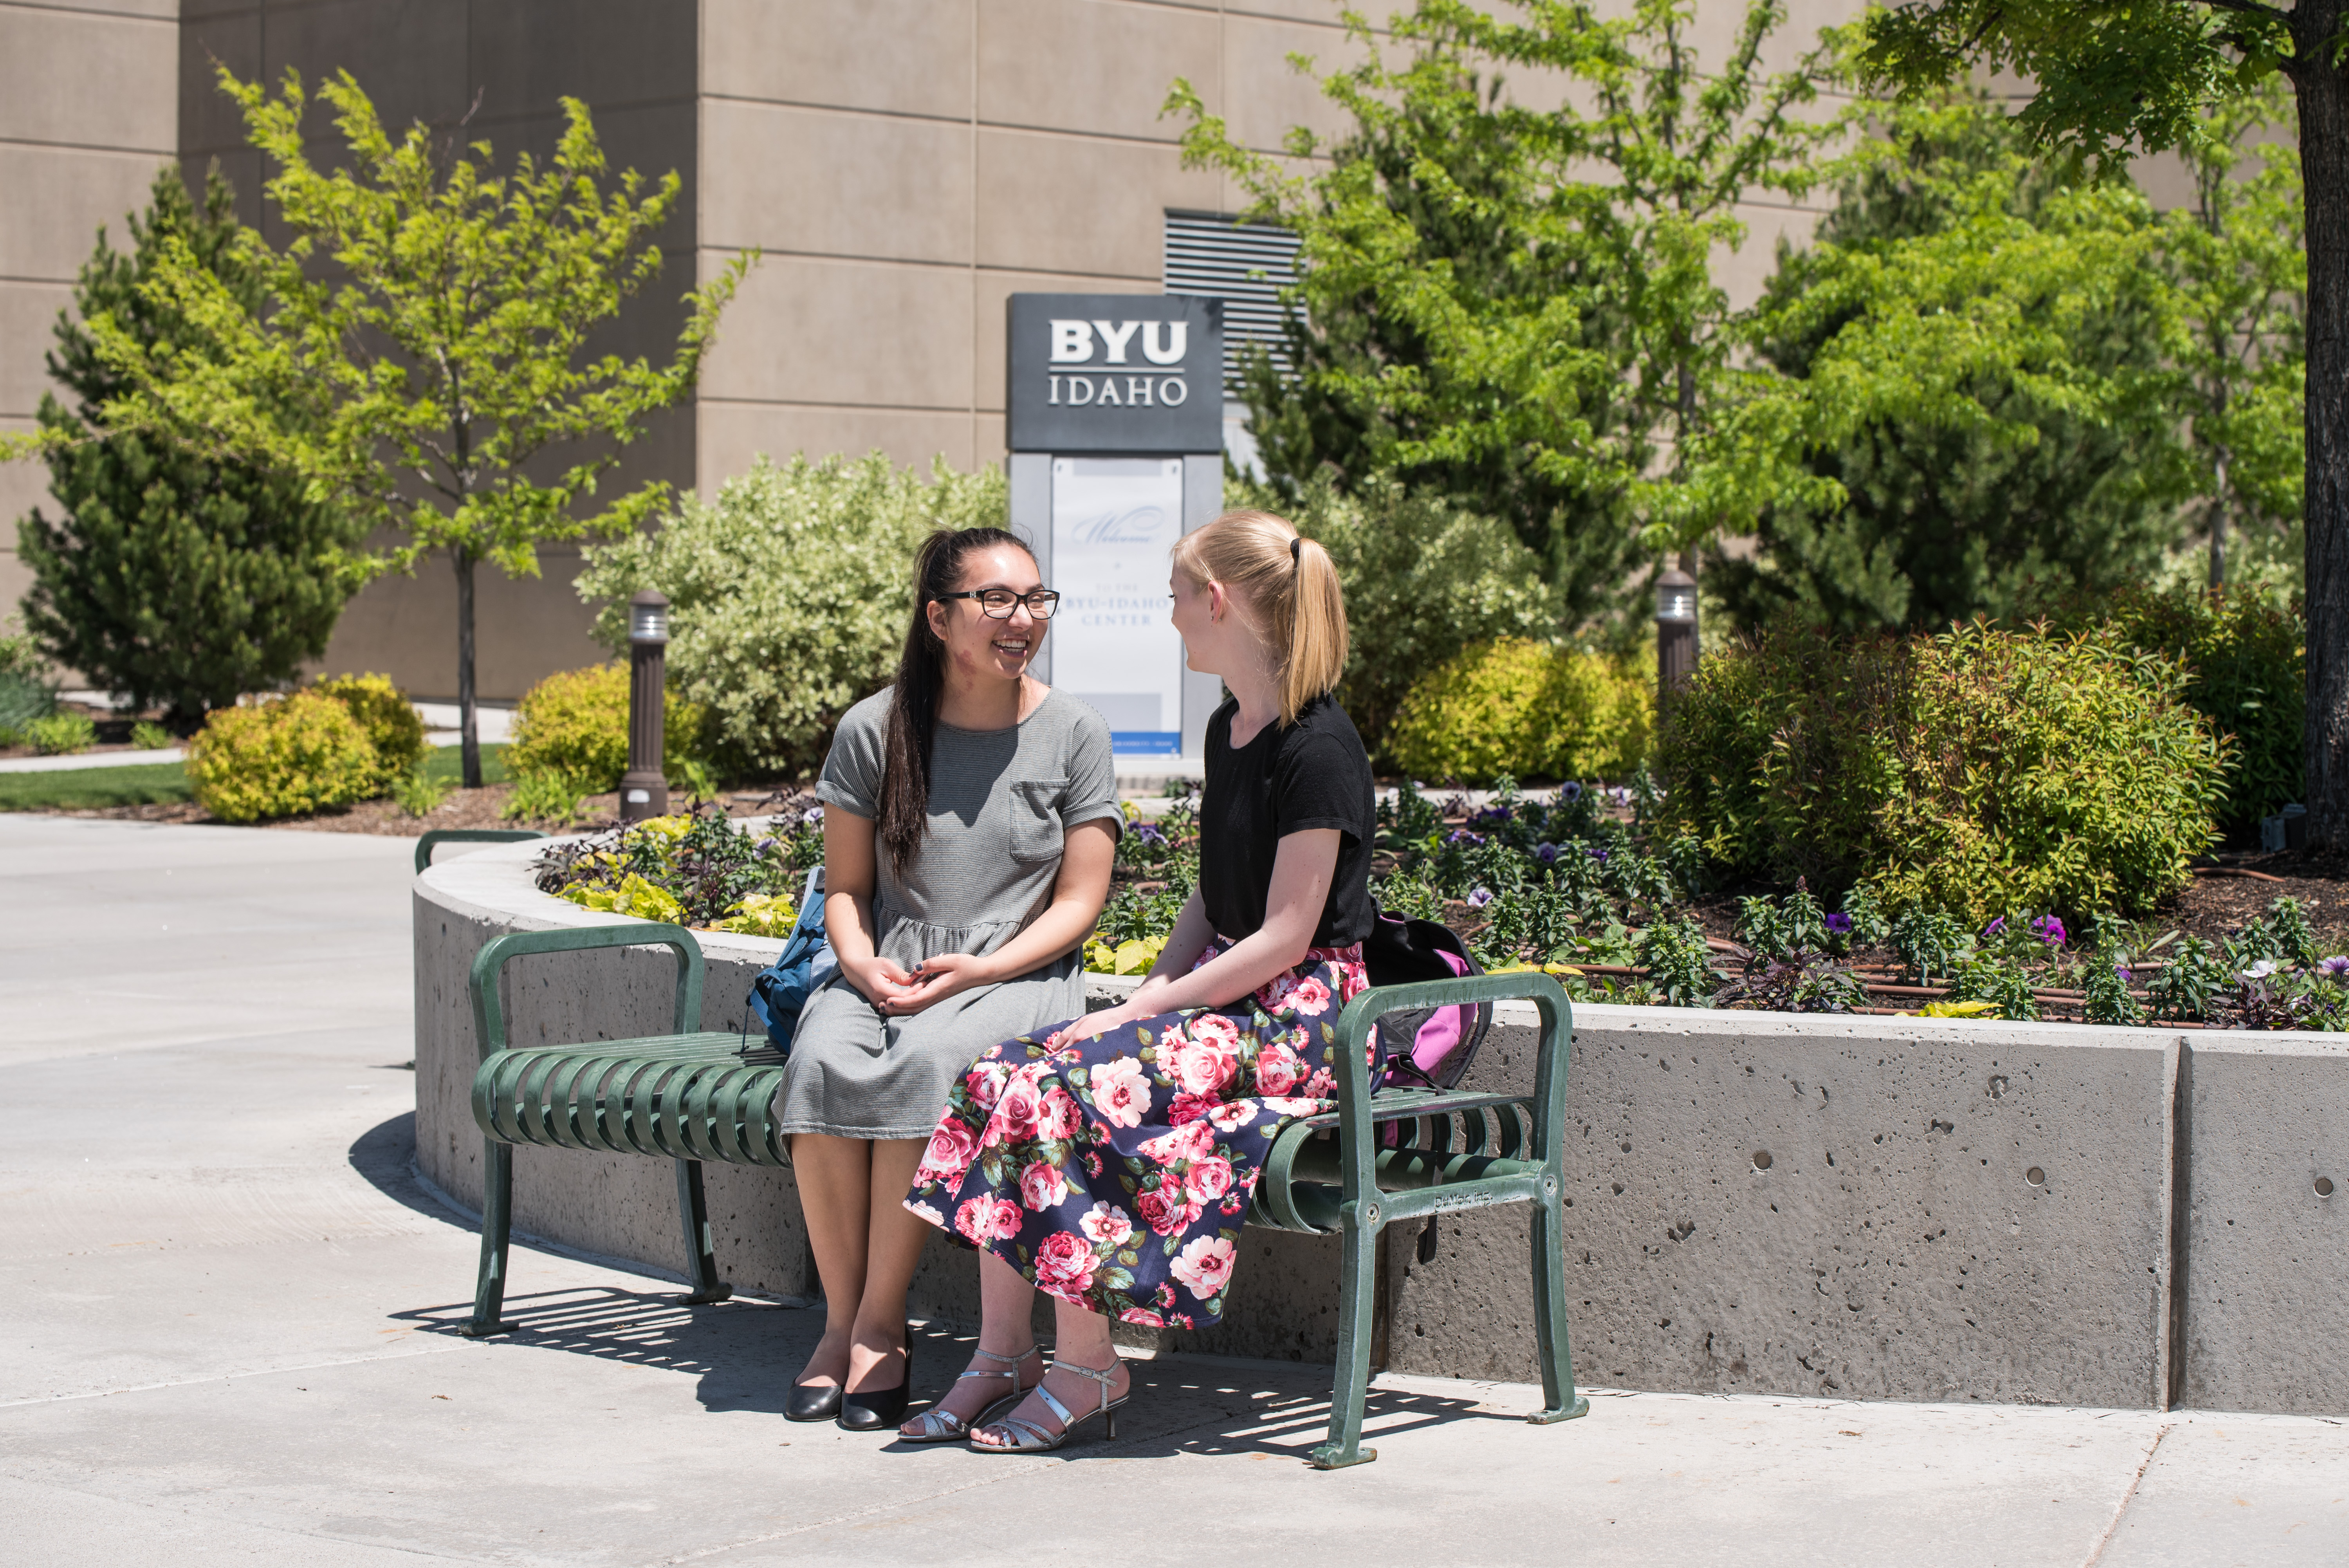 Students wait outside of the BYU-Idaho Center for the weekly devotional to begin on June 4, 2019.